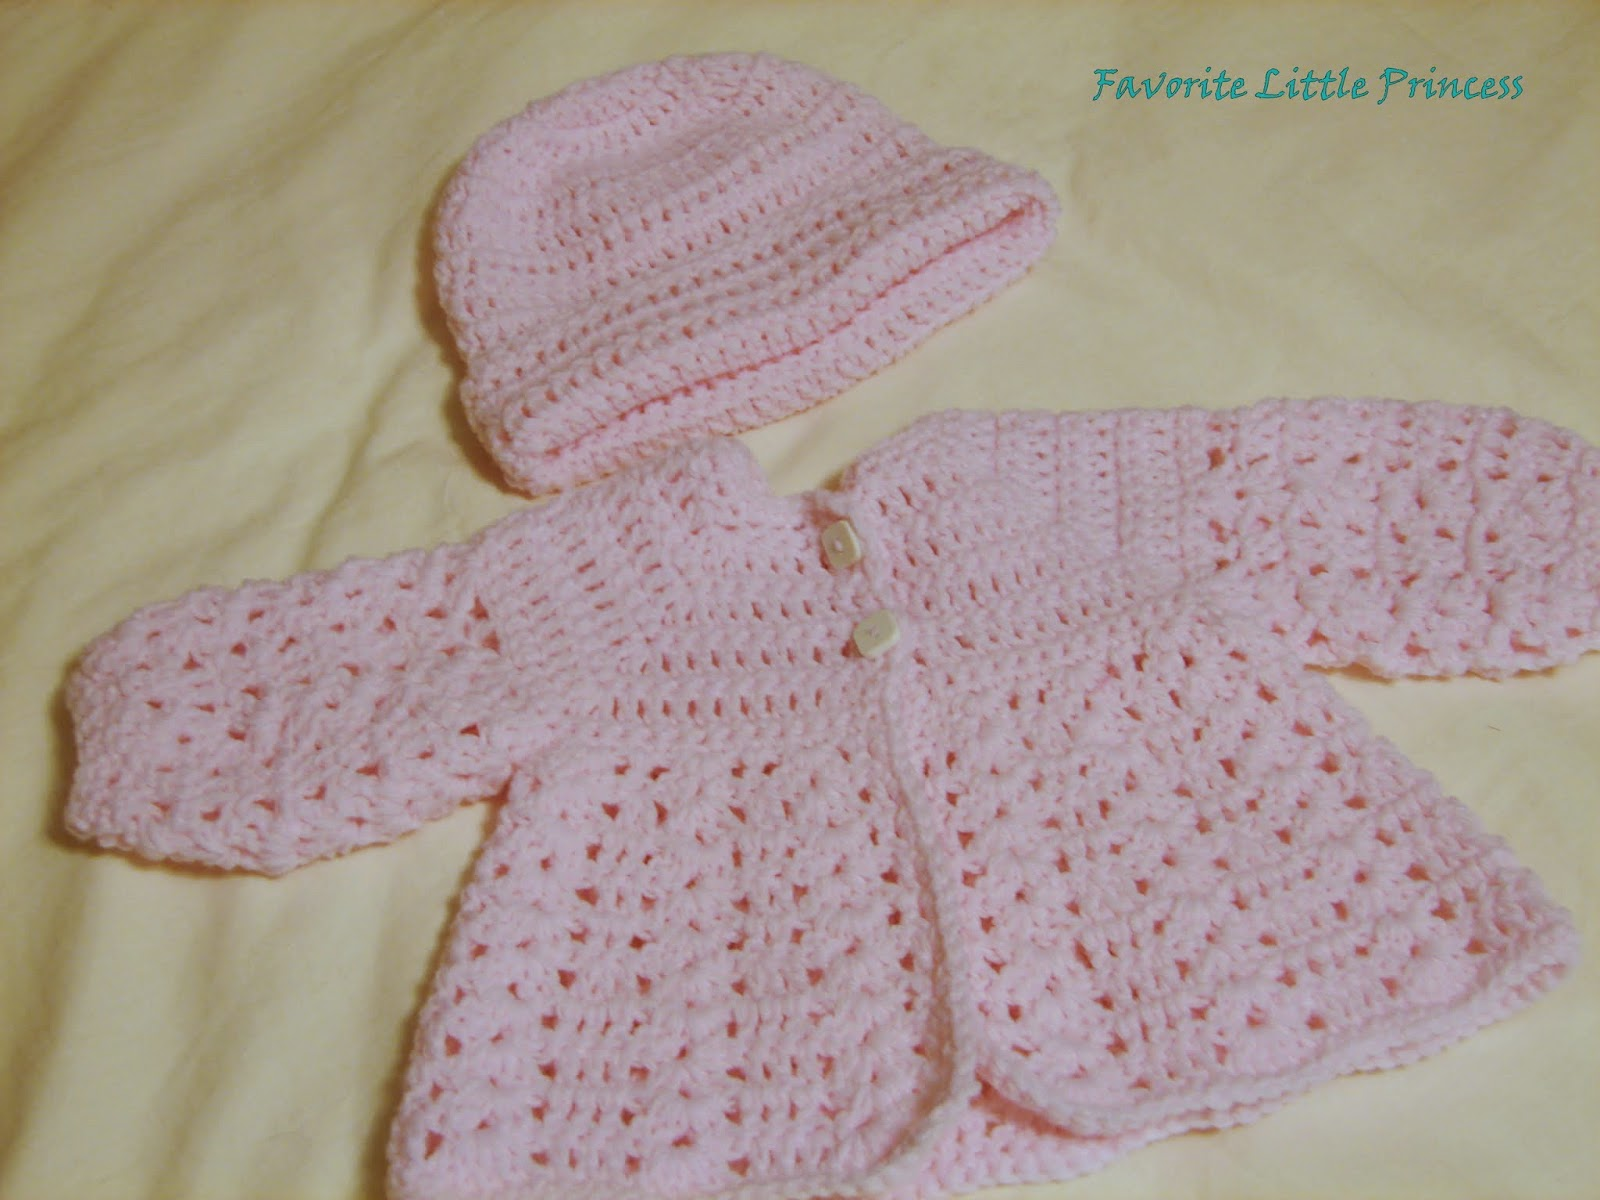 Crochet Pattern Central Baby Cardigans : Favorite Little Princess: Easy Baby Sweater and Hat